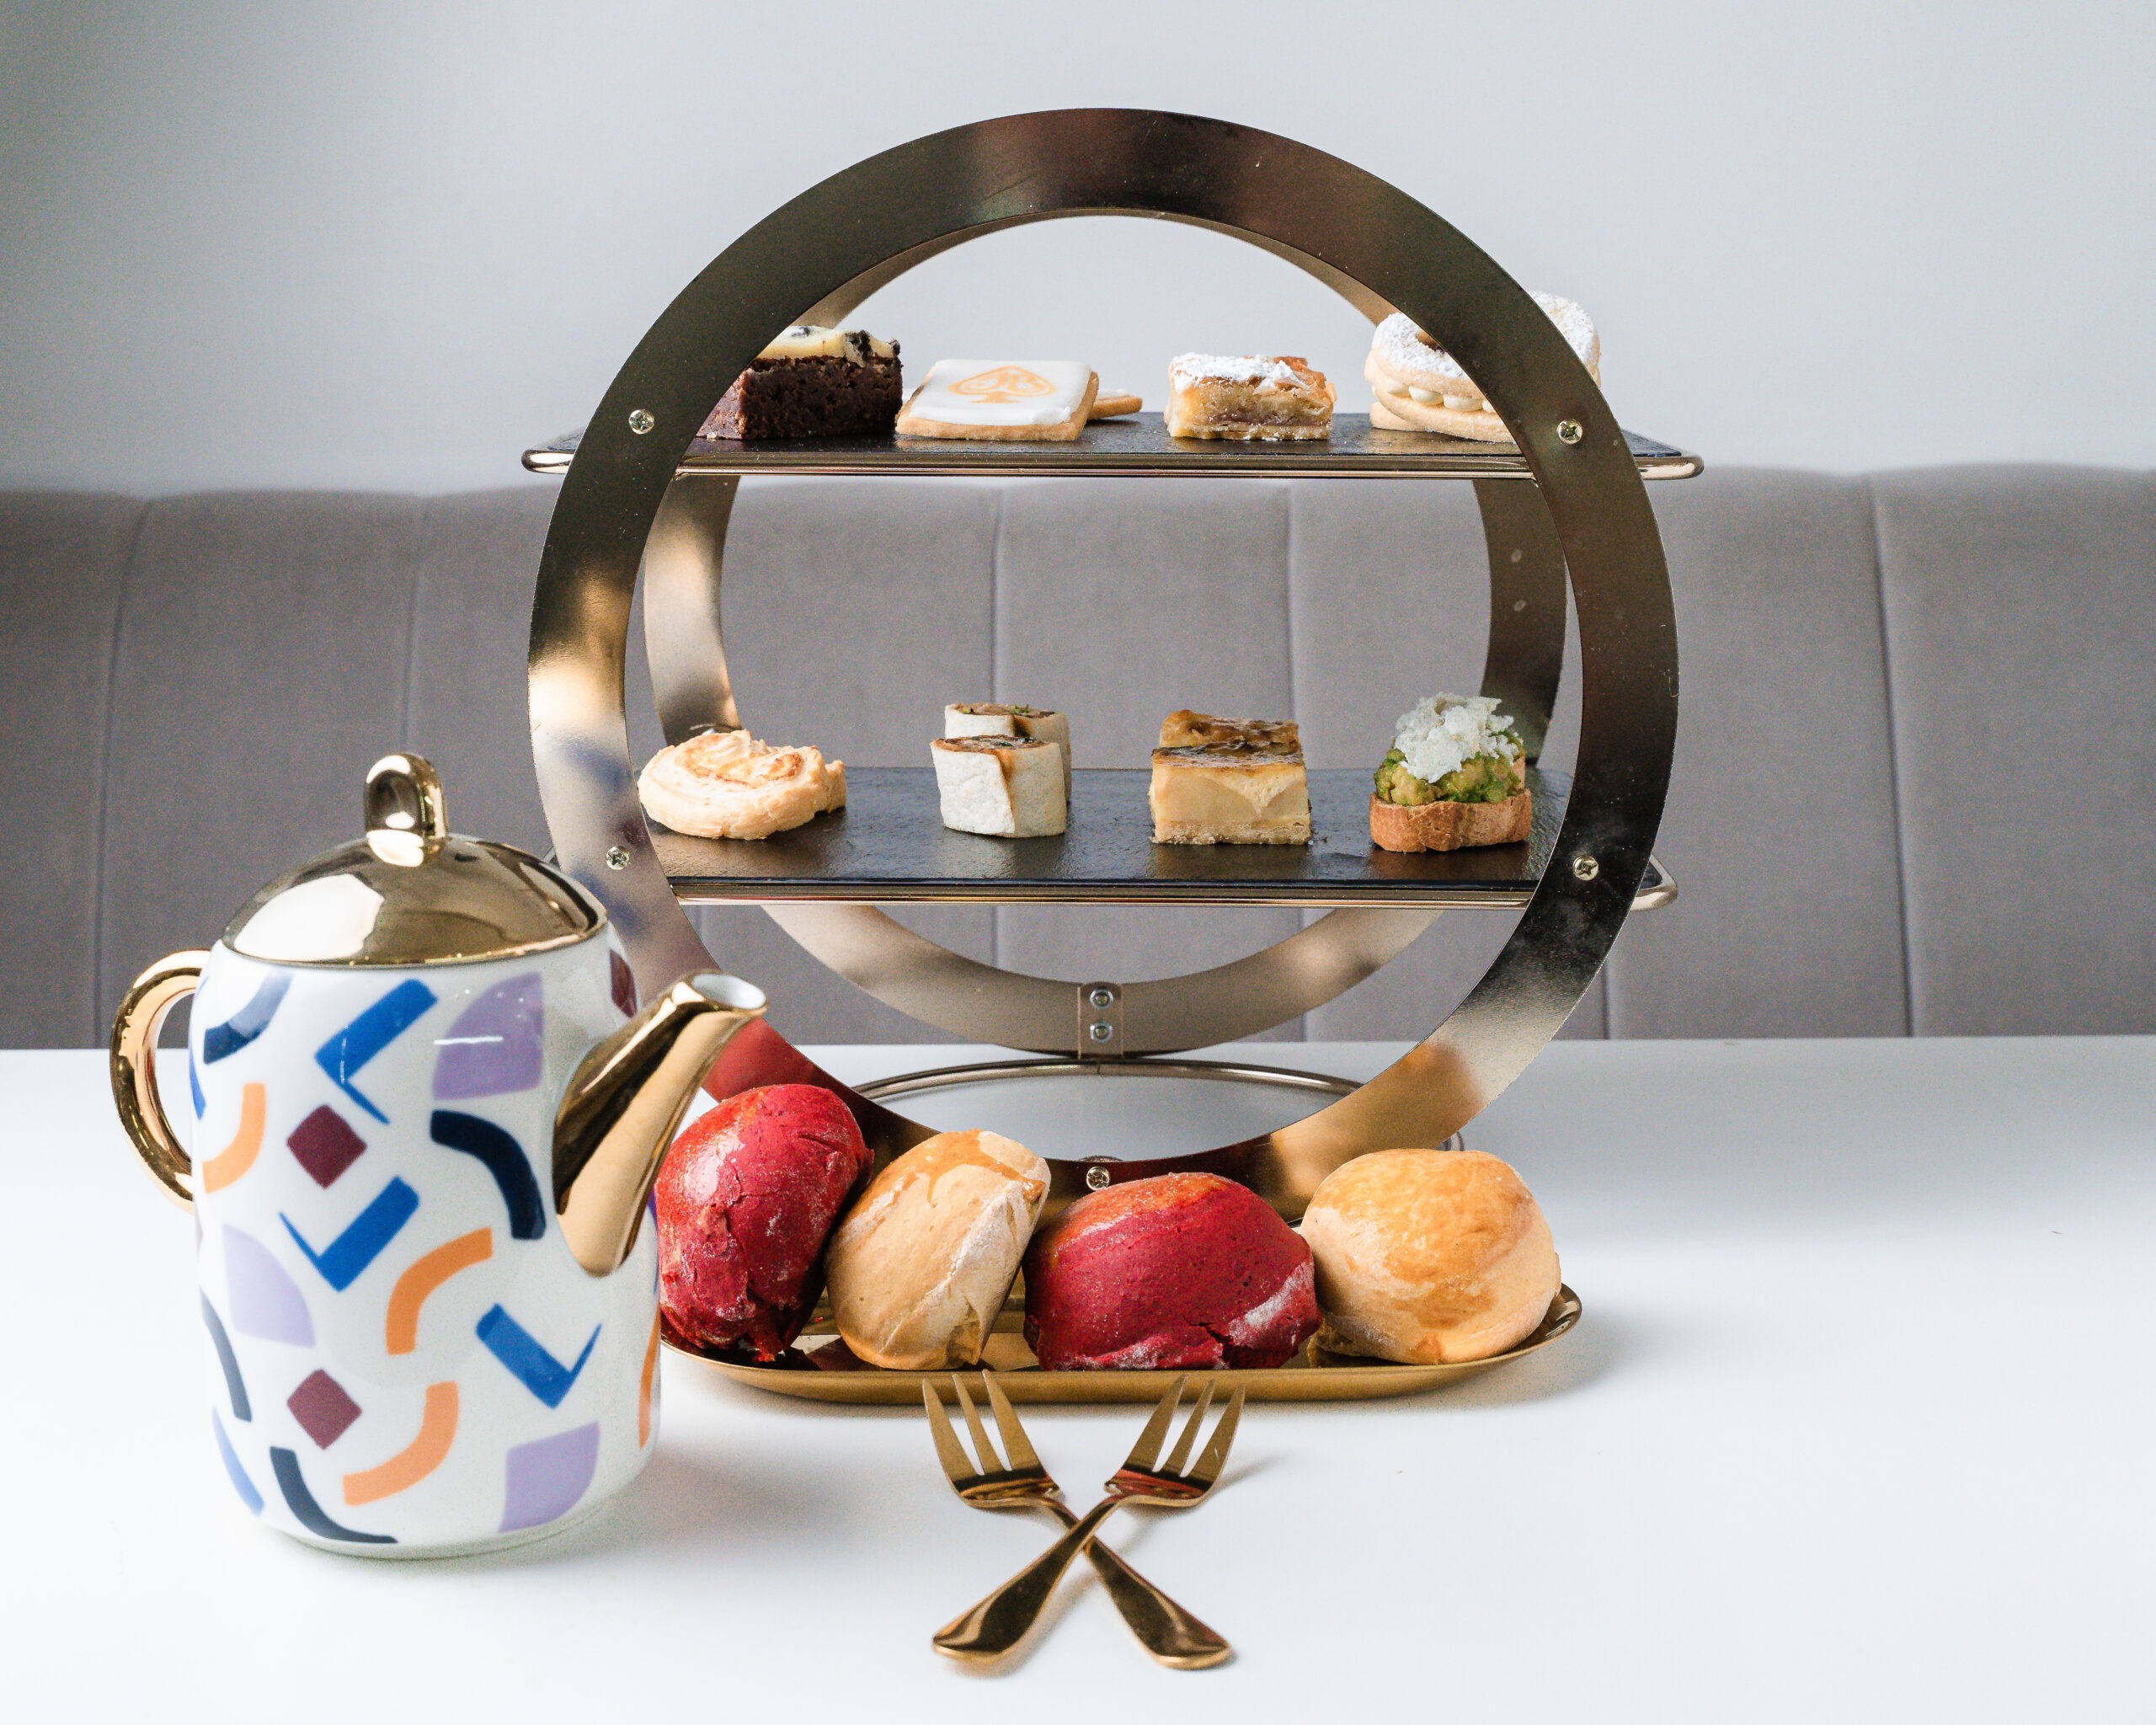 Afternoon Tea & Bottomless Cake Brunches at Jack & Beyond - Their new afternoon tea has just launched and is available every day